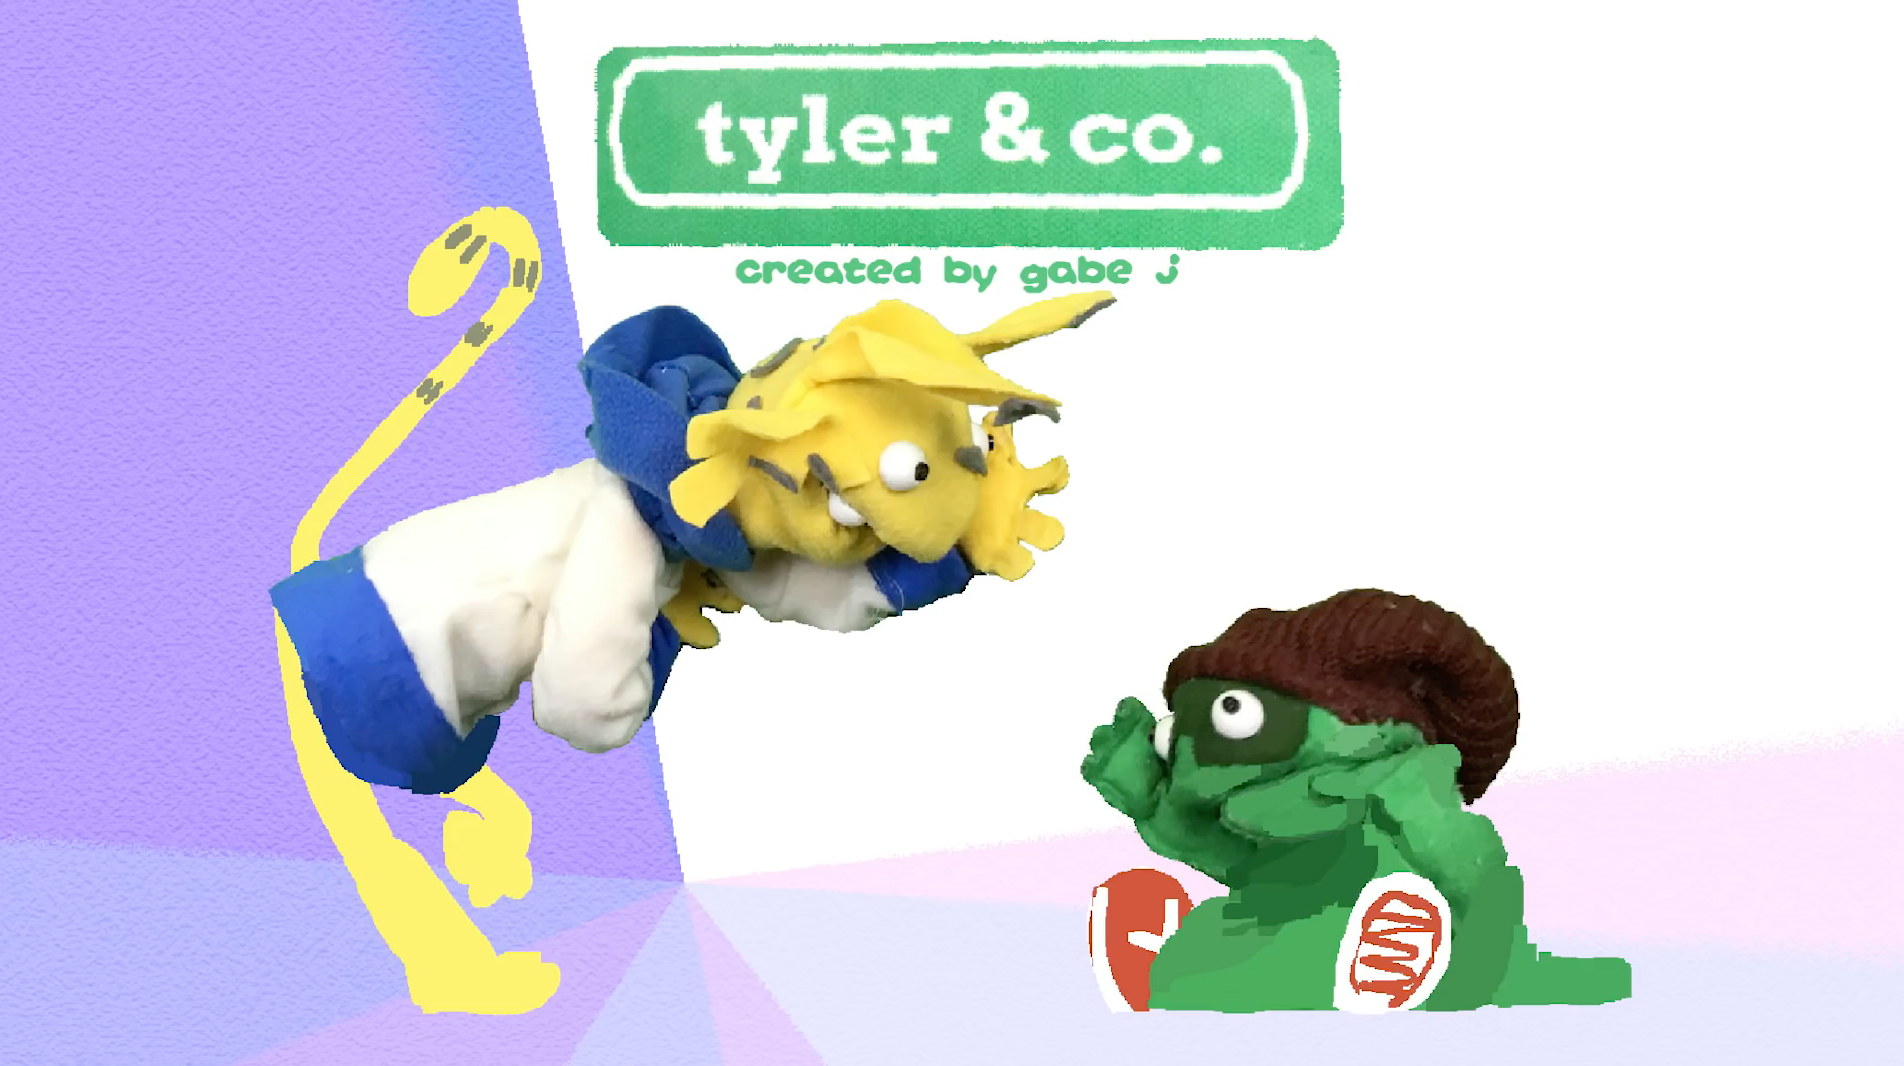 VV_GO!-Cartoons_Tyler & Co.png